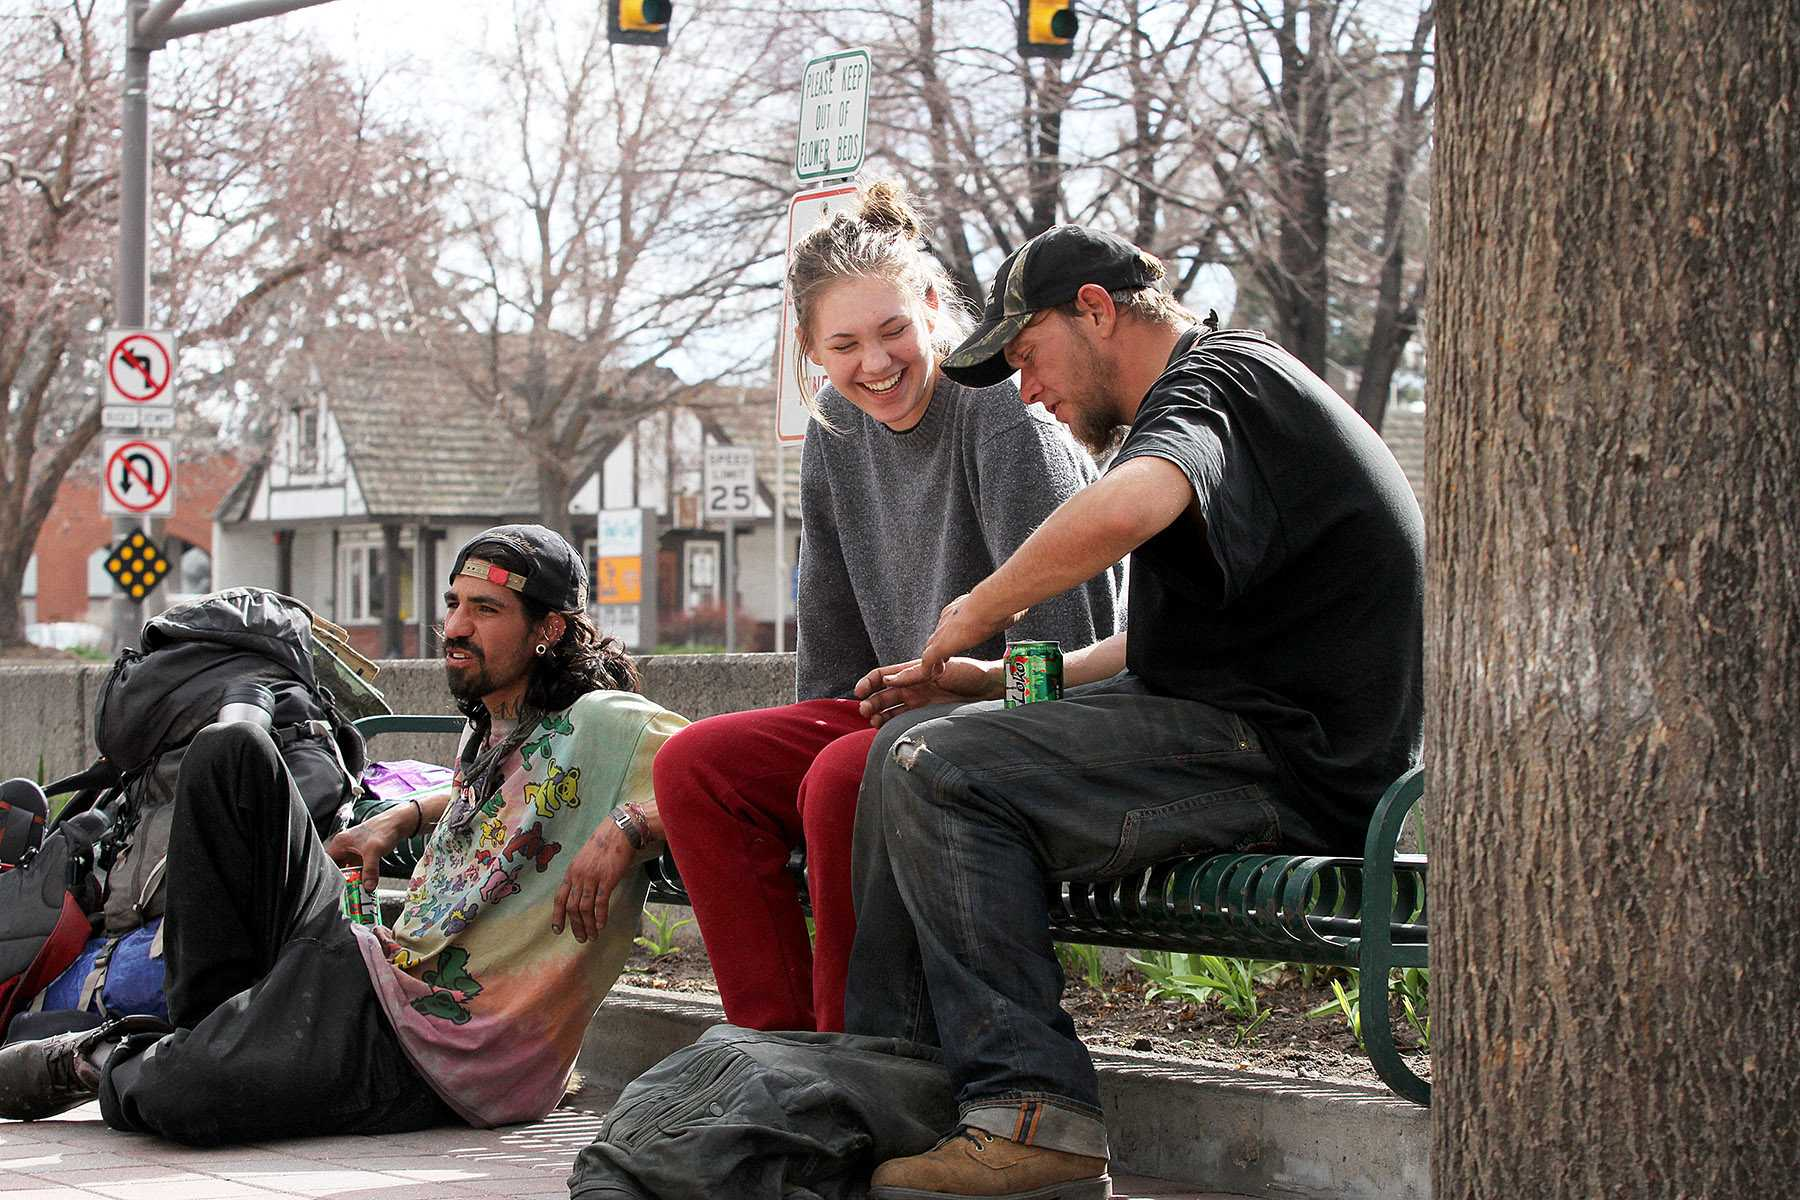 "Collegian reporter, Cailley Biagini, talks to two ""hobo travelers"" named Fishtaco (left) and Beer (right) in Old Town on Friday afternoon. Biagini went undercover for an afternoon to find out how Fort Collins homeless people are treated."